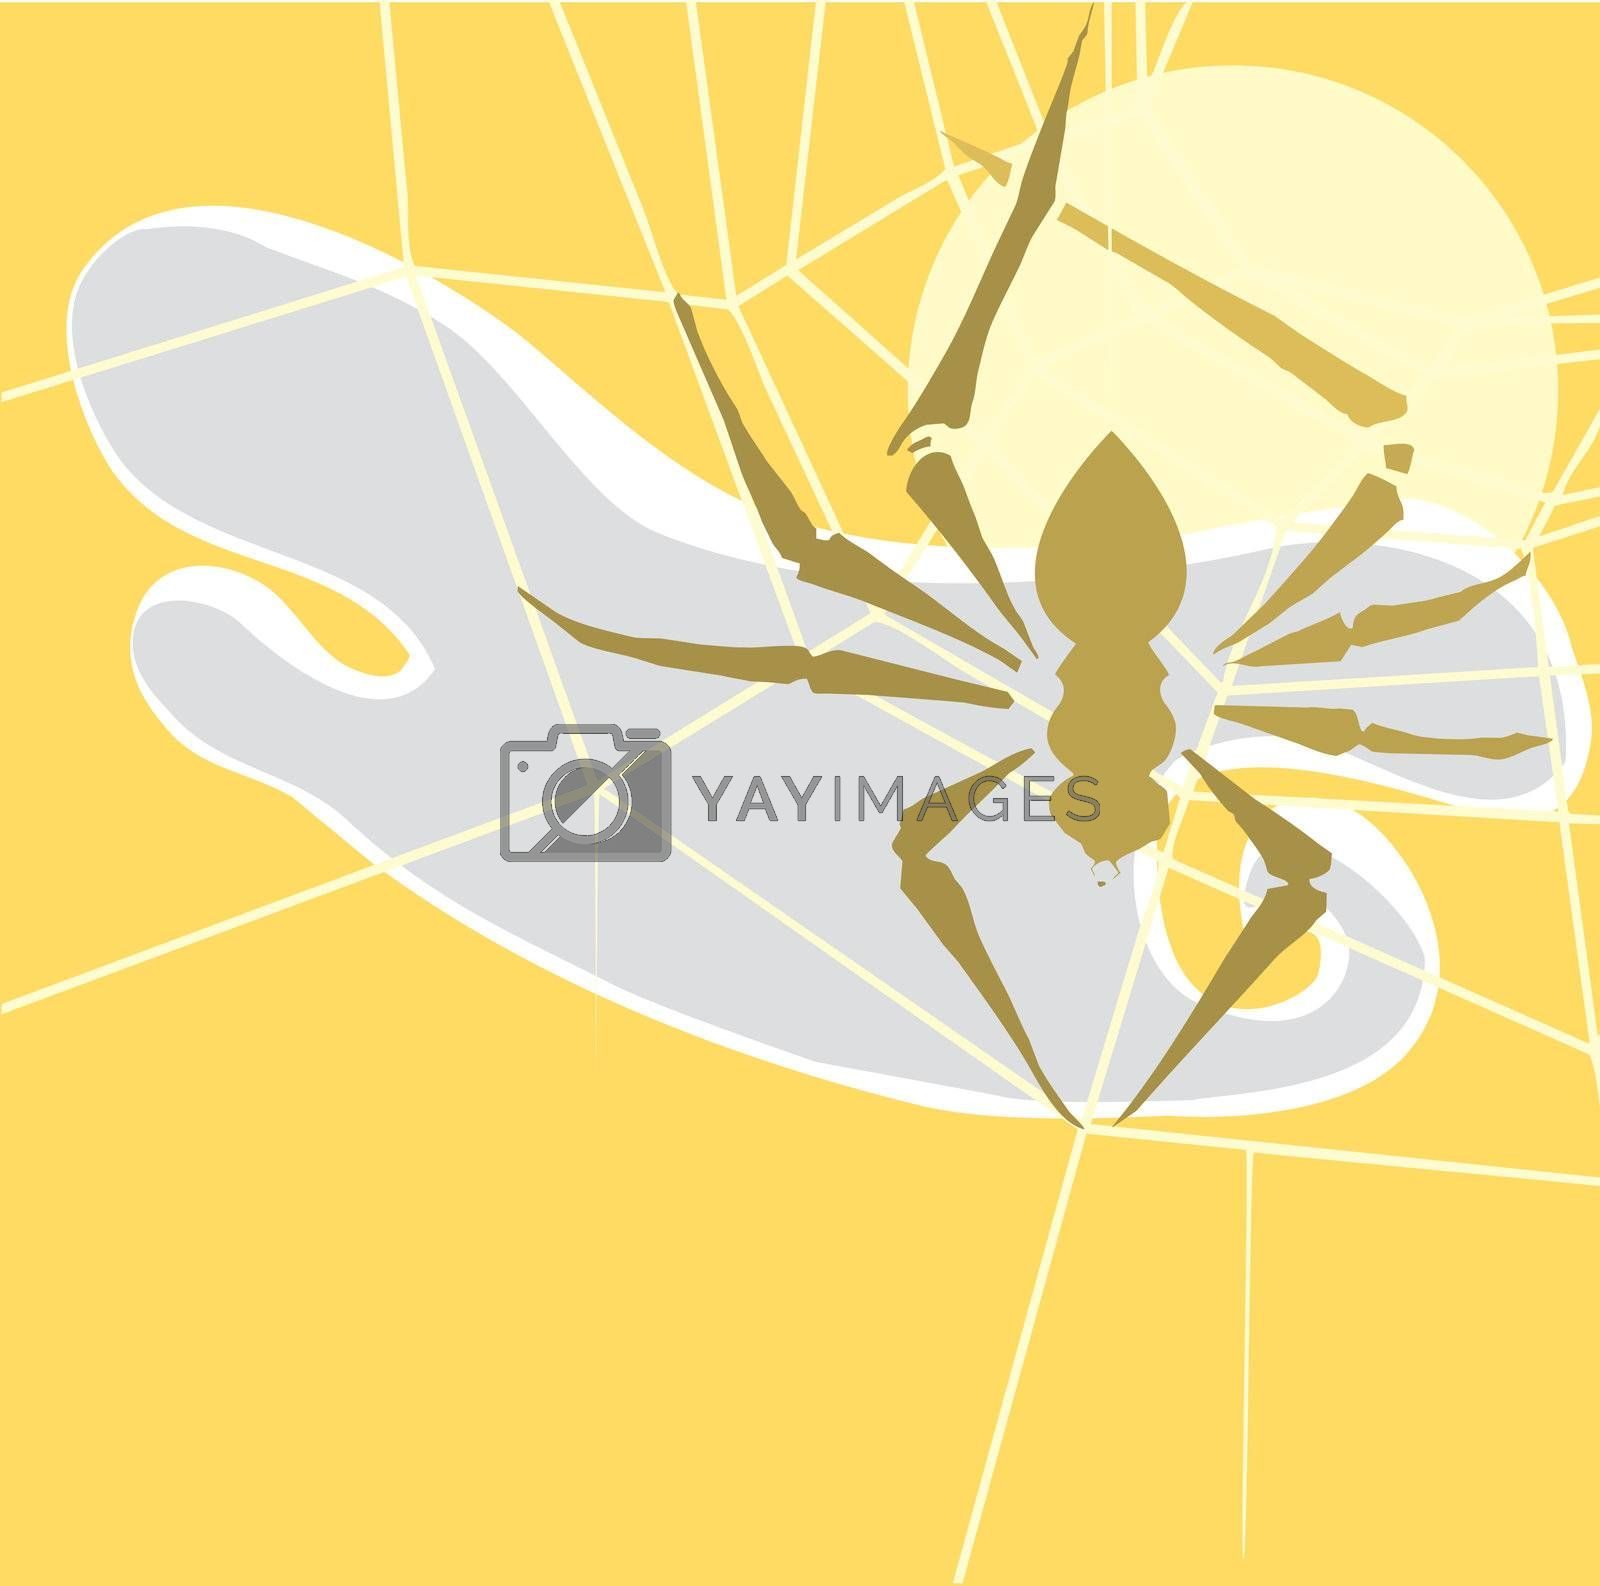 Small spider in shadow spinning its web.